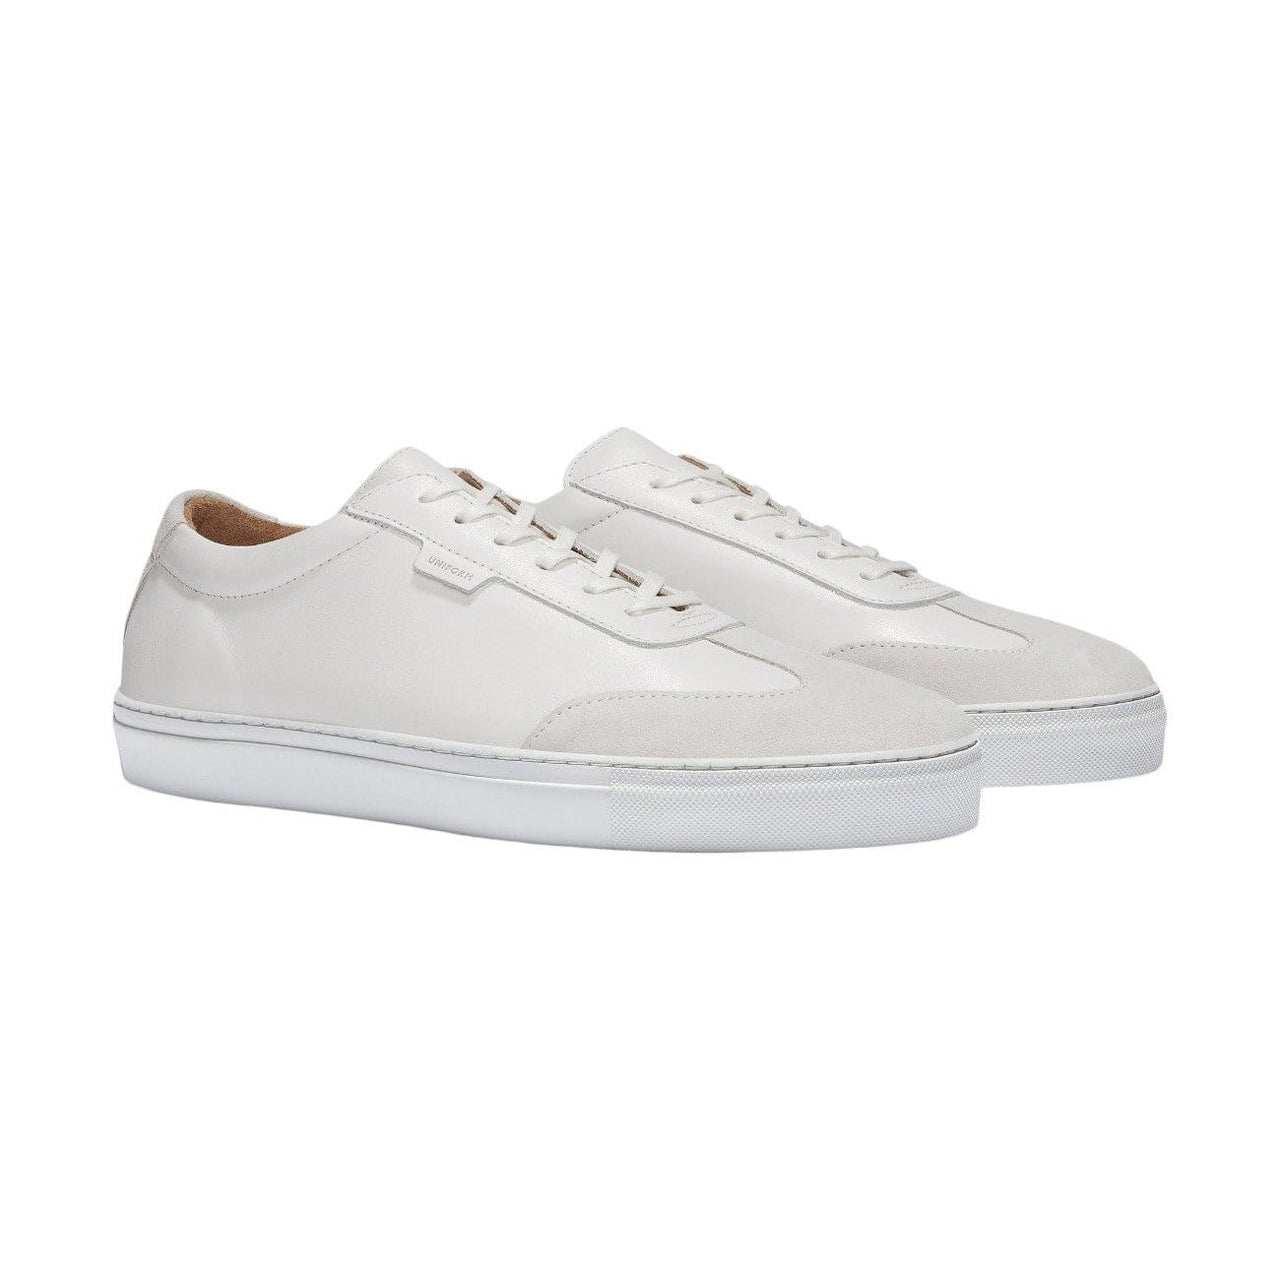 UNIFORM STANDARD Footwear Women's SERIES 3 White Leather Sneaker